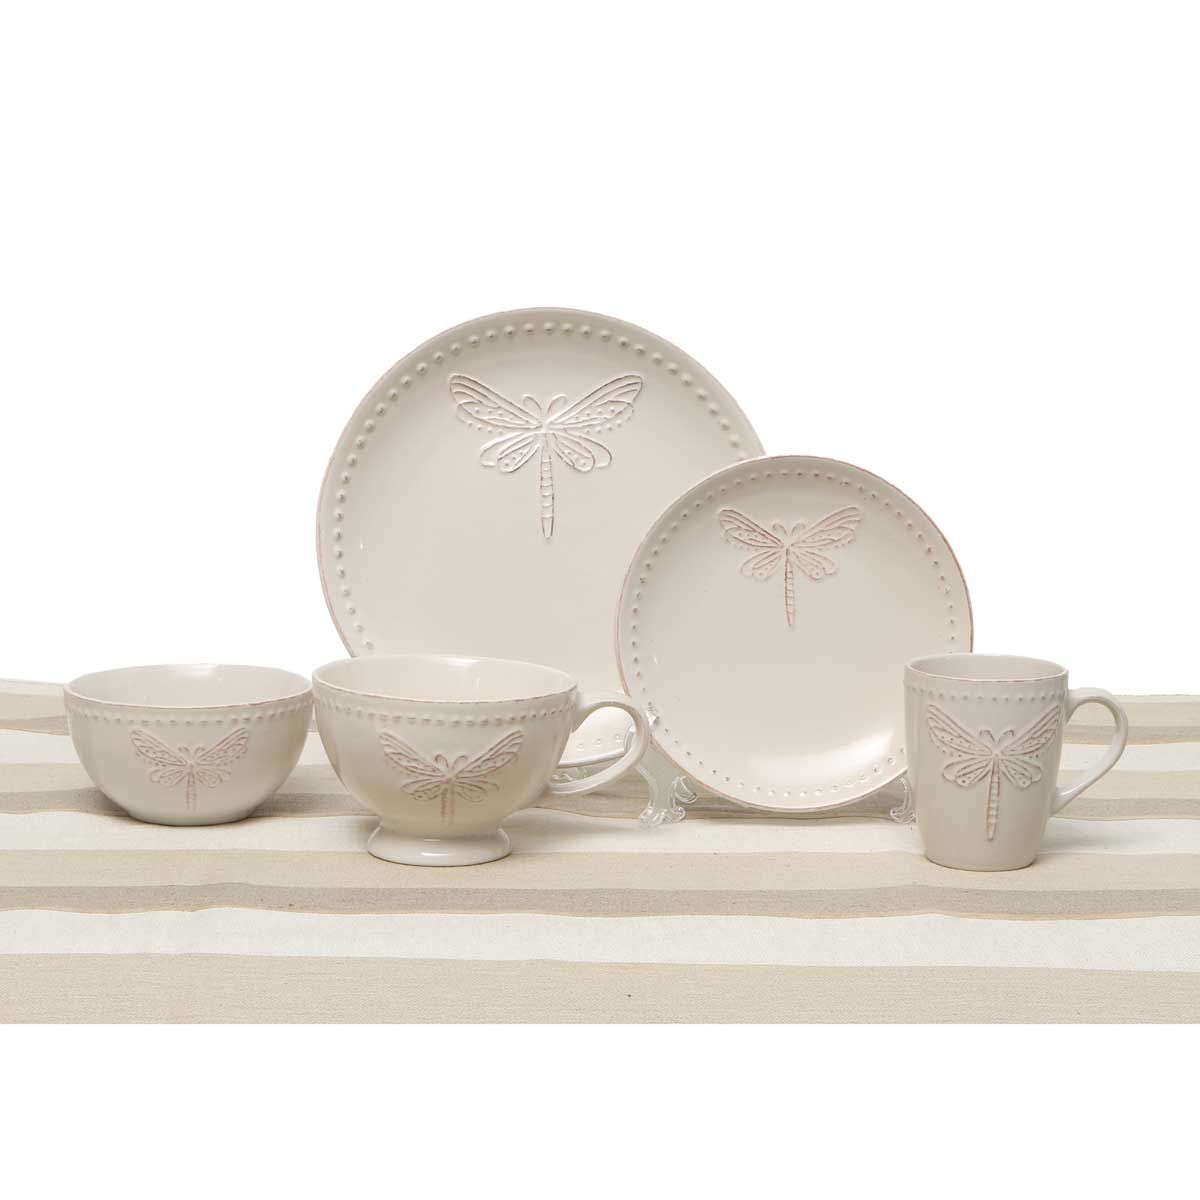 DRAGONFLY 5 PIECE PLACE SETTING